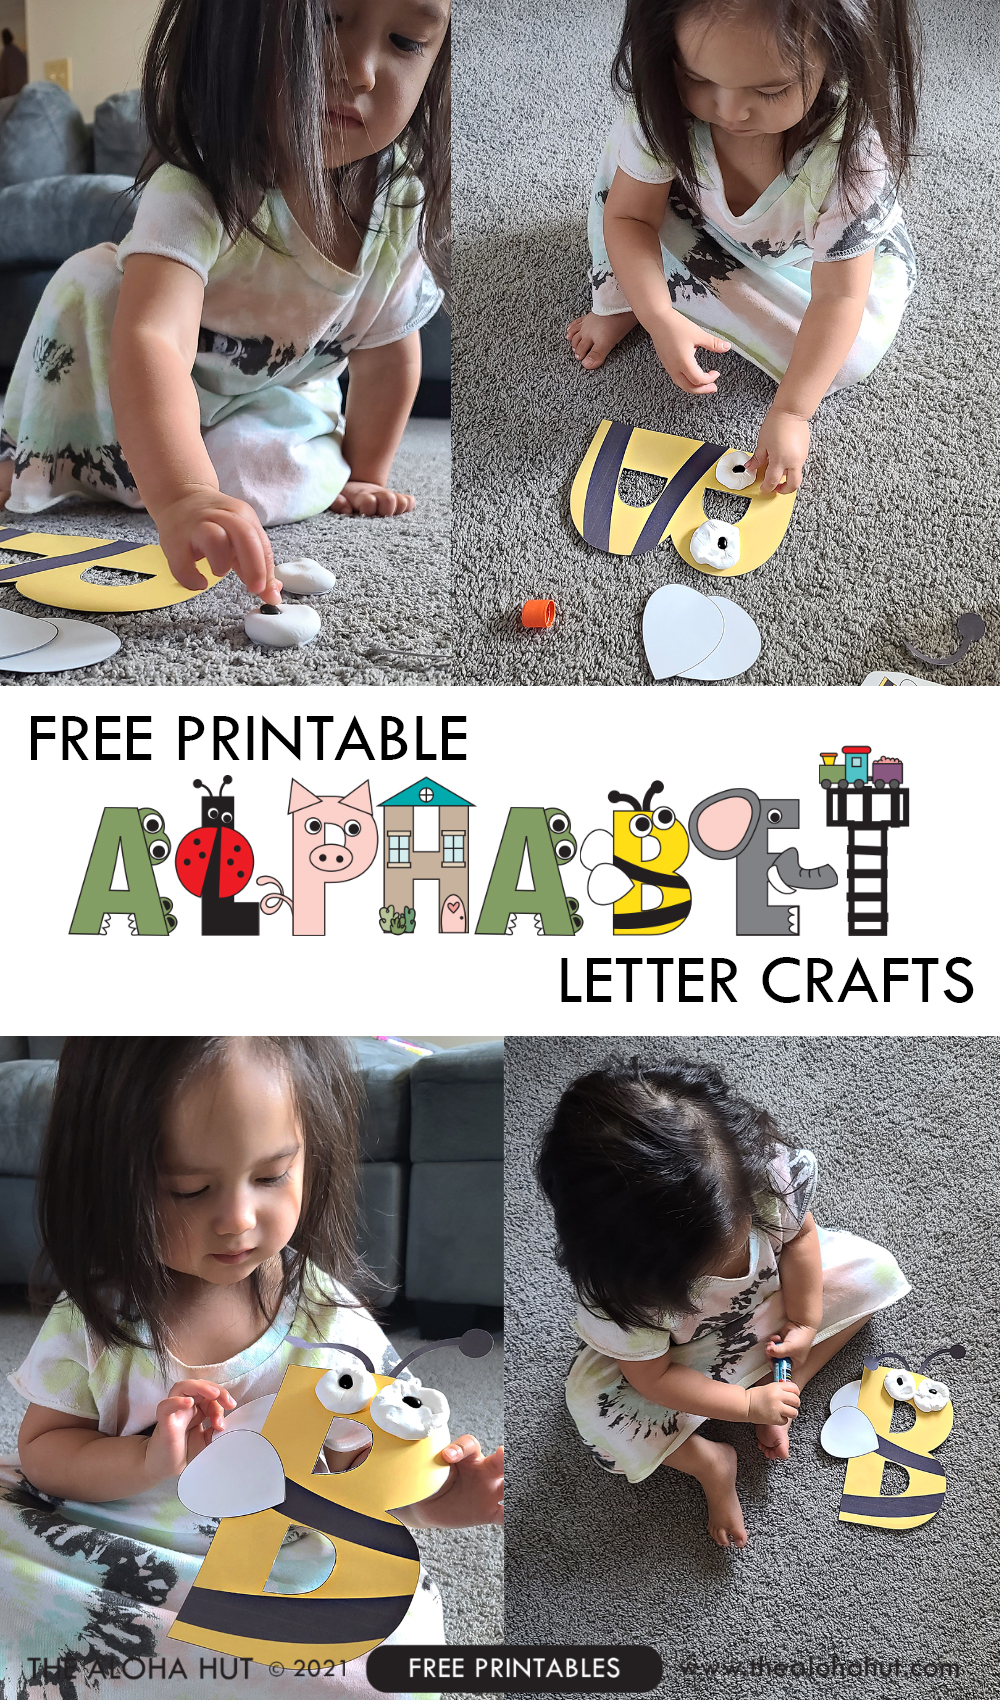 Alphabet Letter Crafts - Letter B - free printable 3 by the Aloha Hut